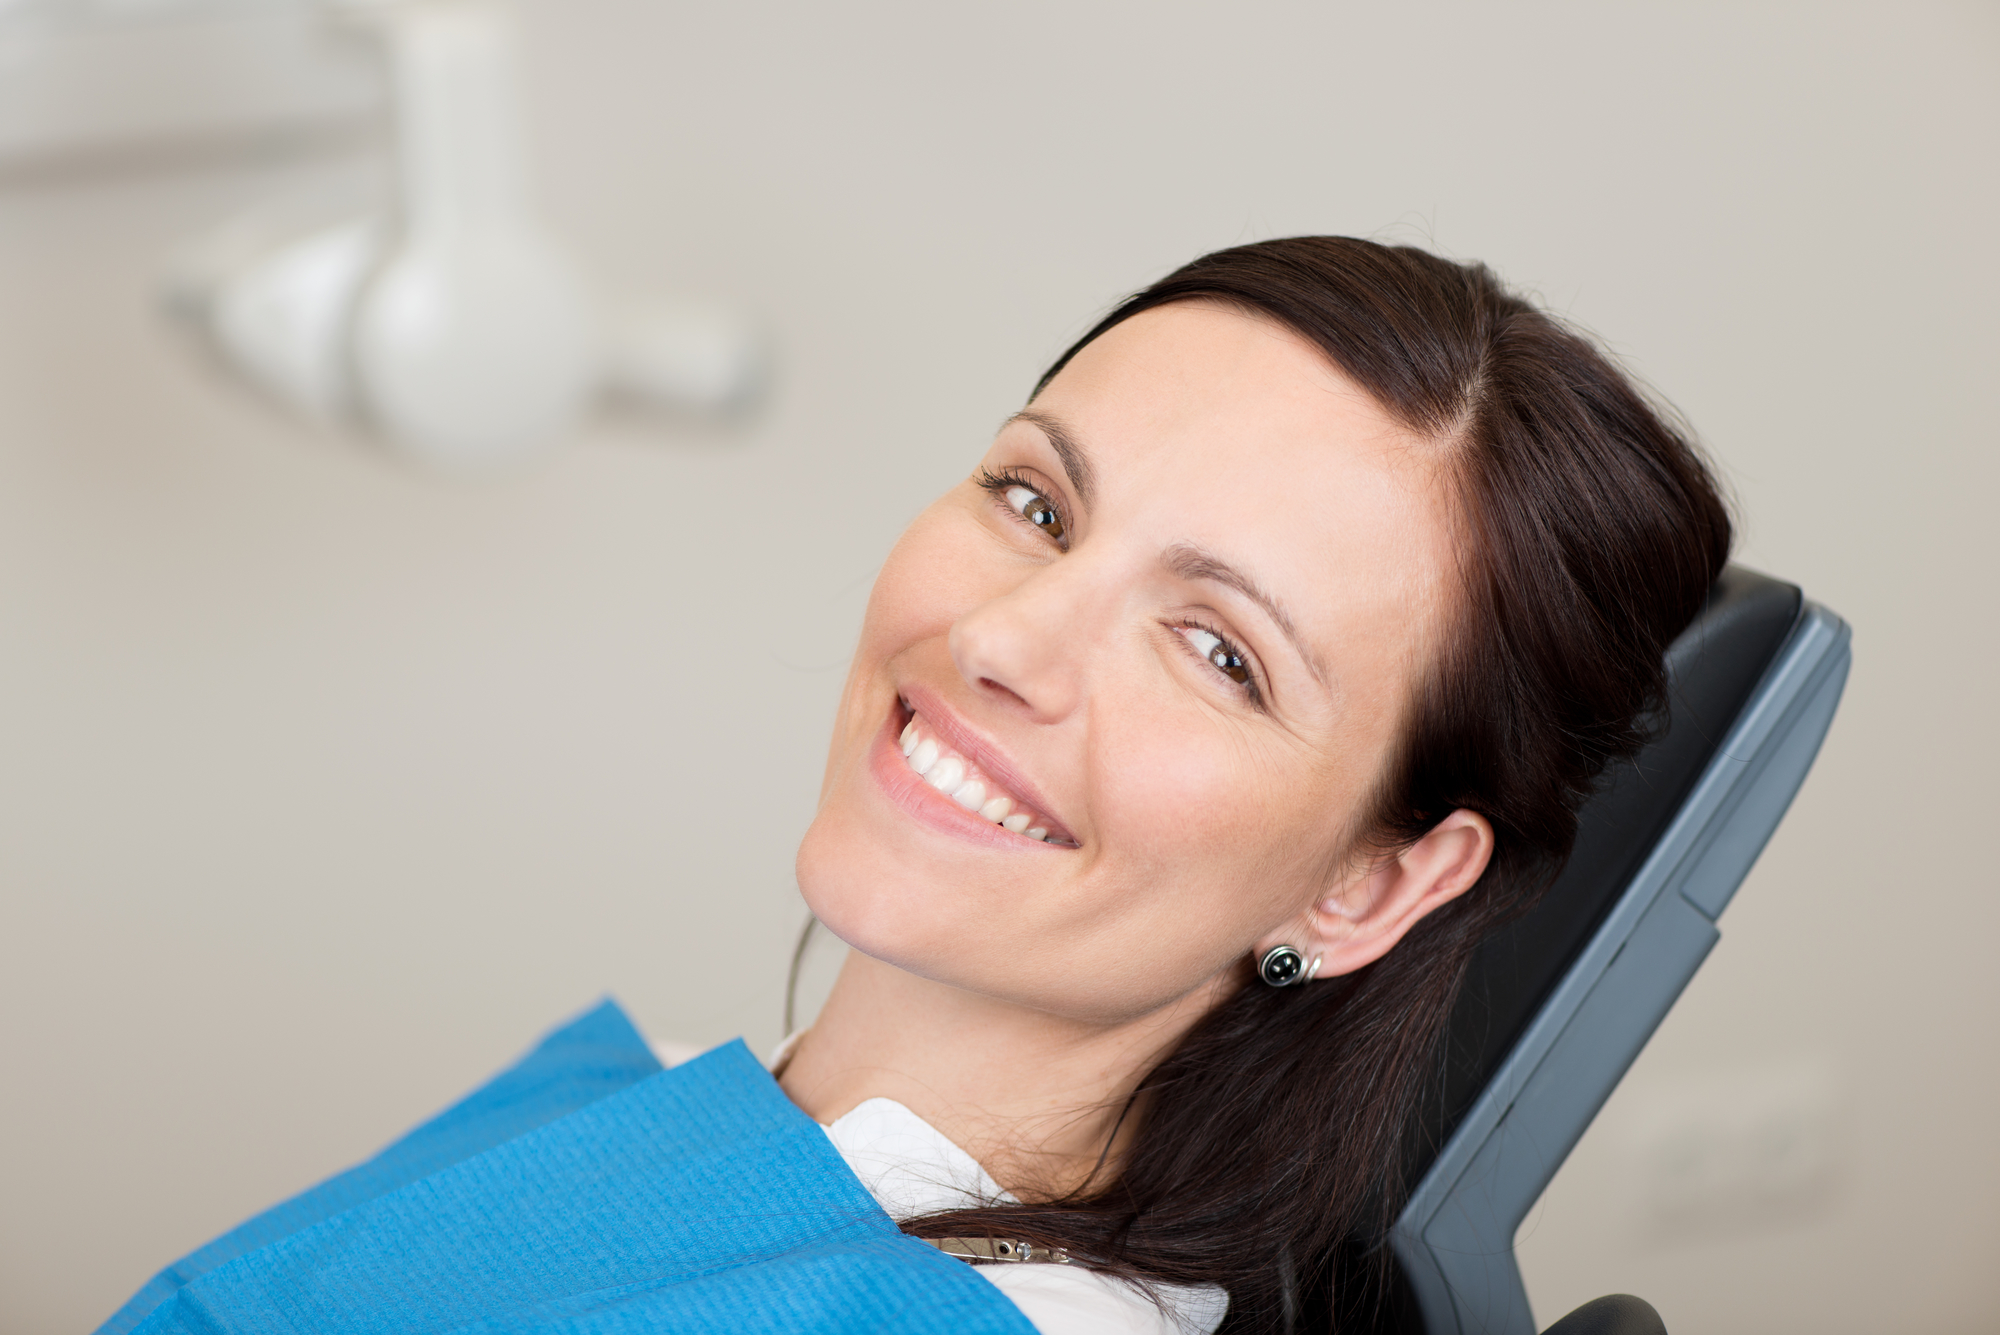 Ceramic Implants Palm Beach Gardens | Why Ceramic Implants are Your Best Choice